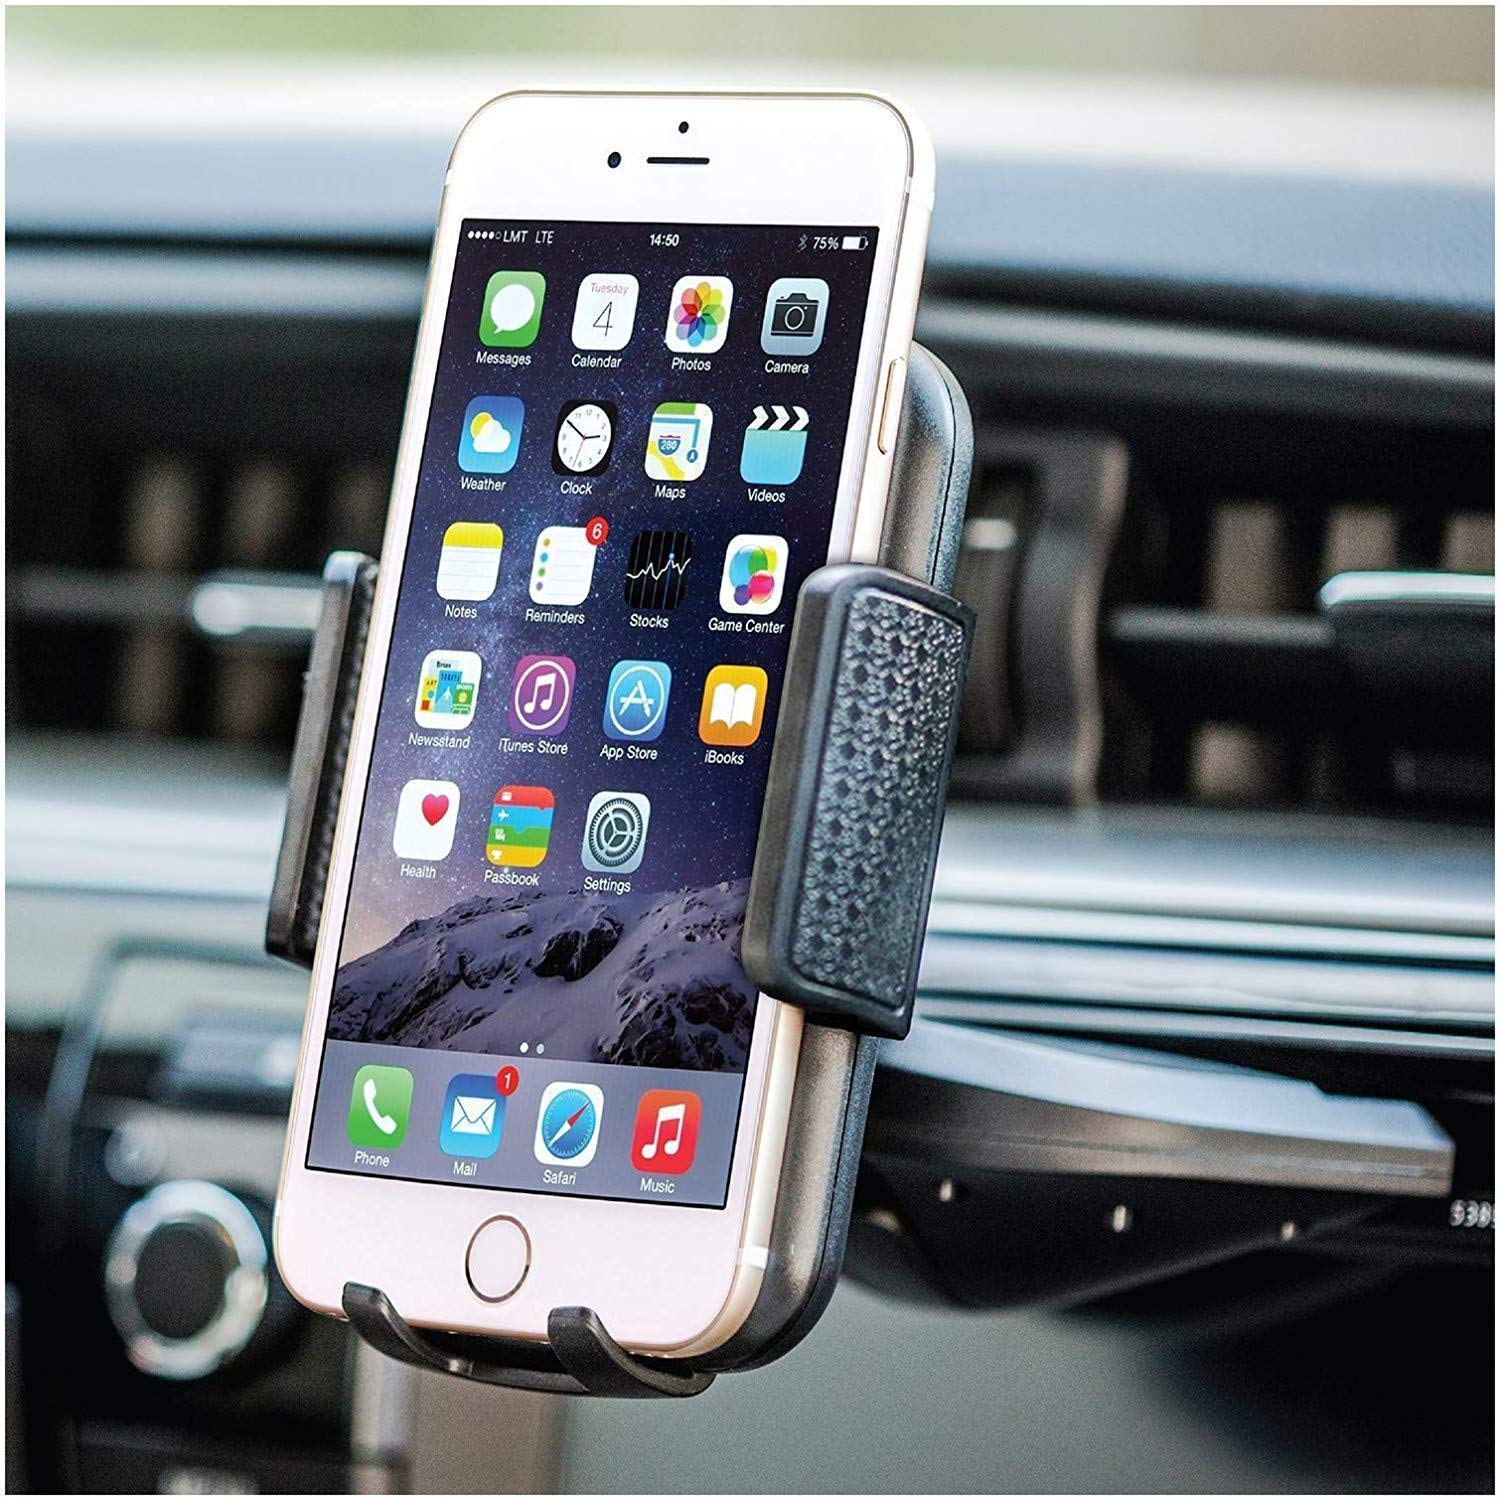 Bestrix Universal CD Phone Mount Cell Phone Holder for Car Compatible with All Smartphones up to 6""